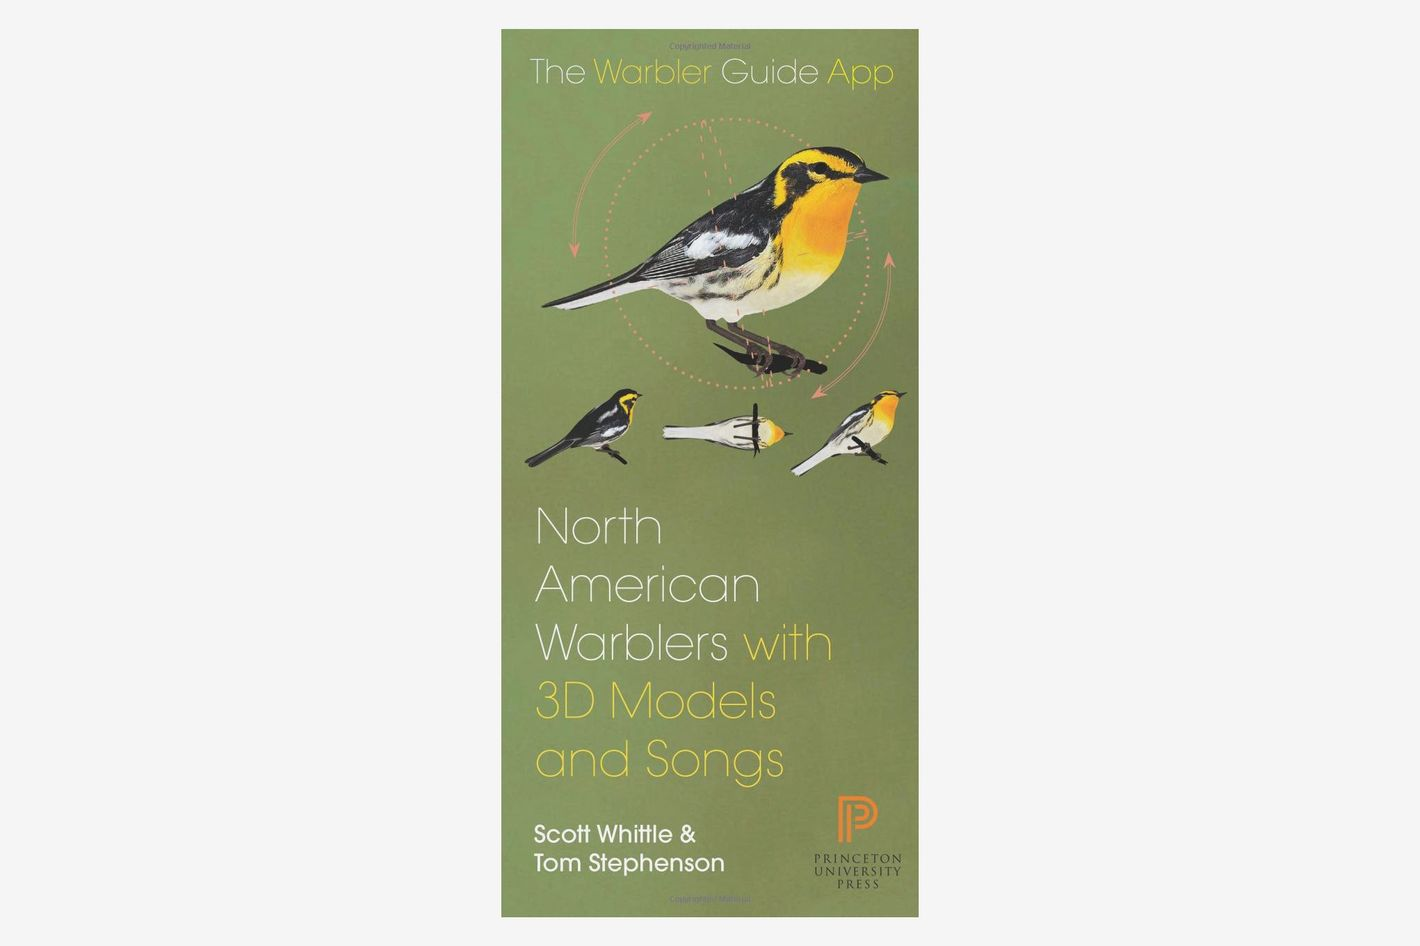 North American Warbler Fold-out Guide: Folding Pocket Guide (with App)